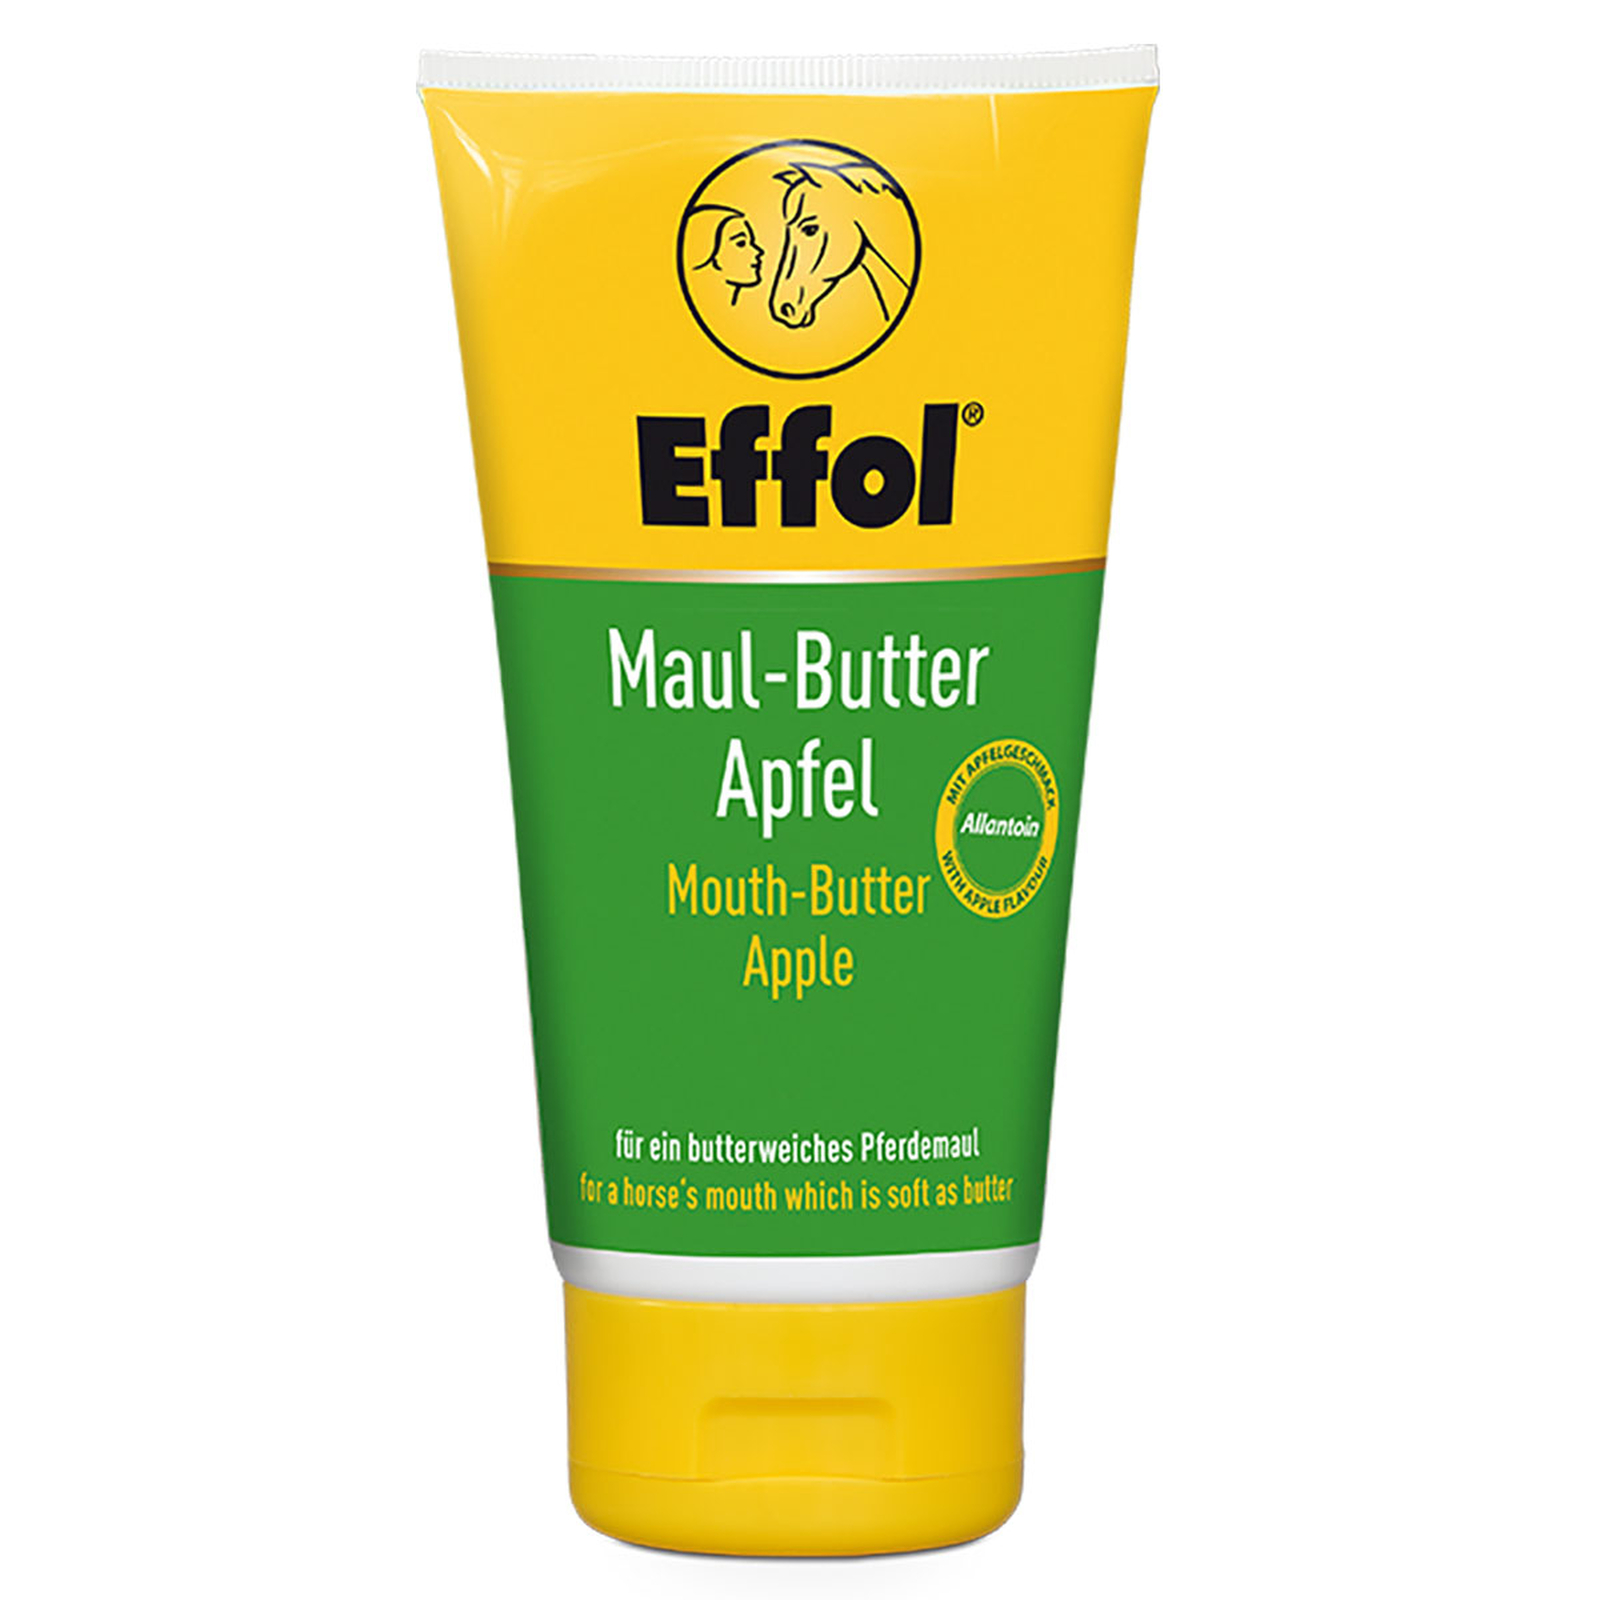 Effol Mouth Bit Butter Apple Flavored